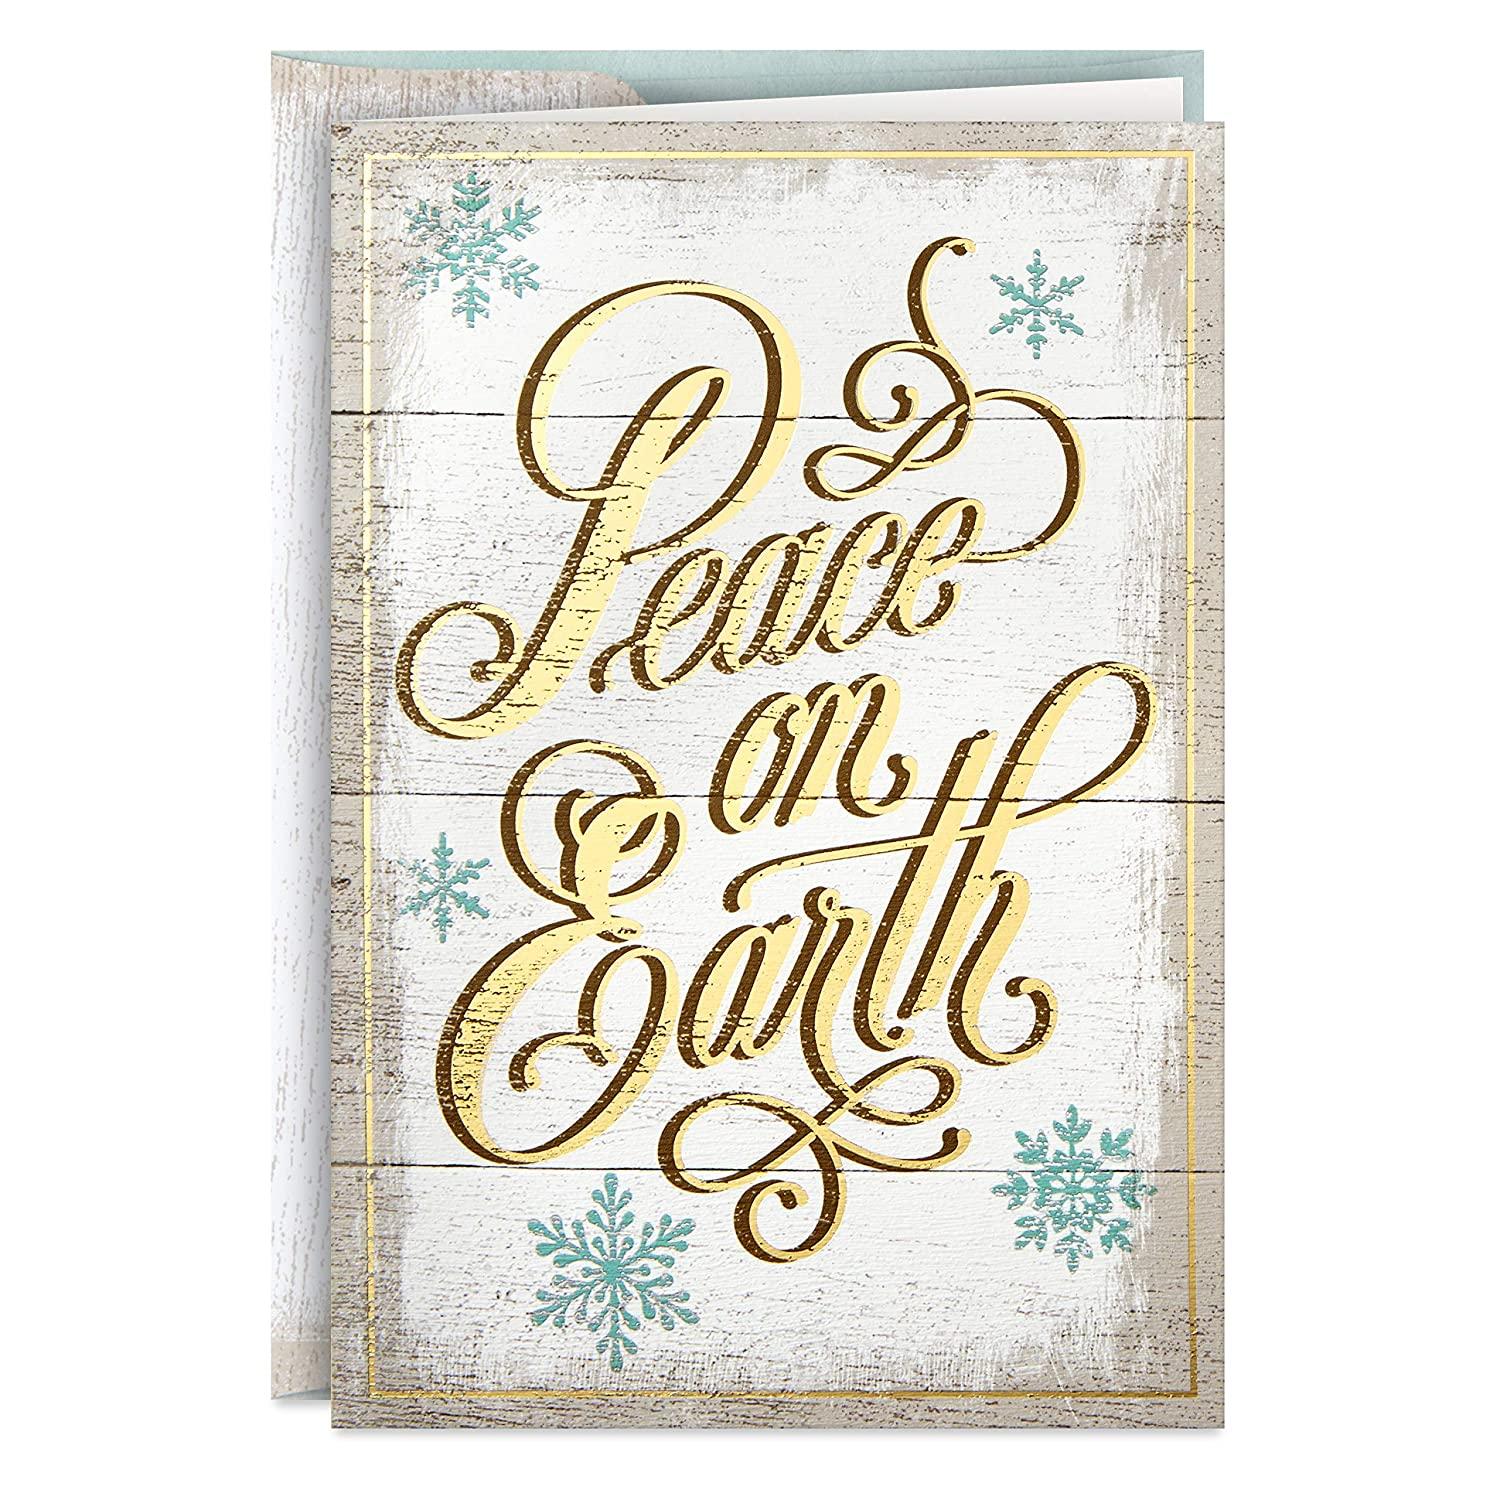 Hallmark Boxed Holiday Cards, Peace on Earth Lettering (16 Cards with 17 Designed Envelopes)